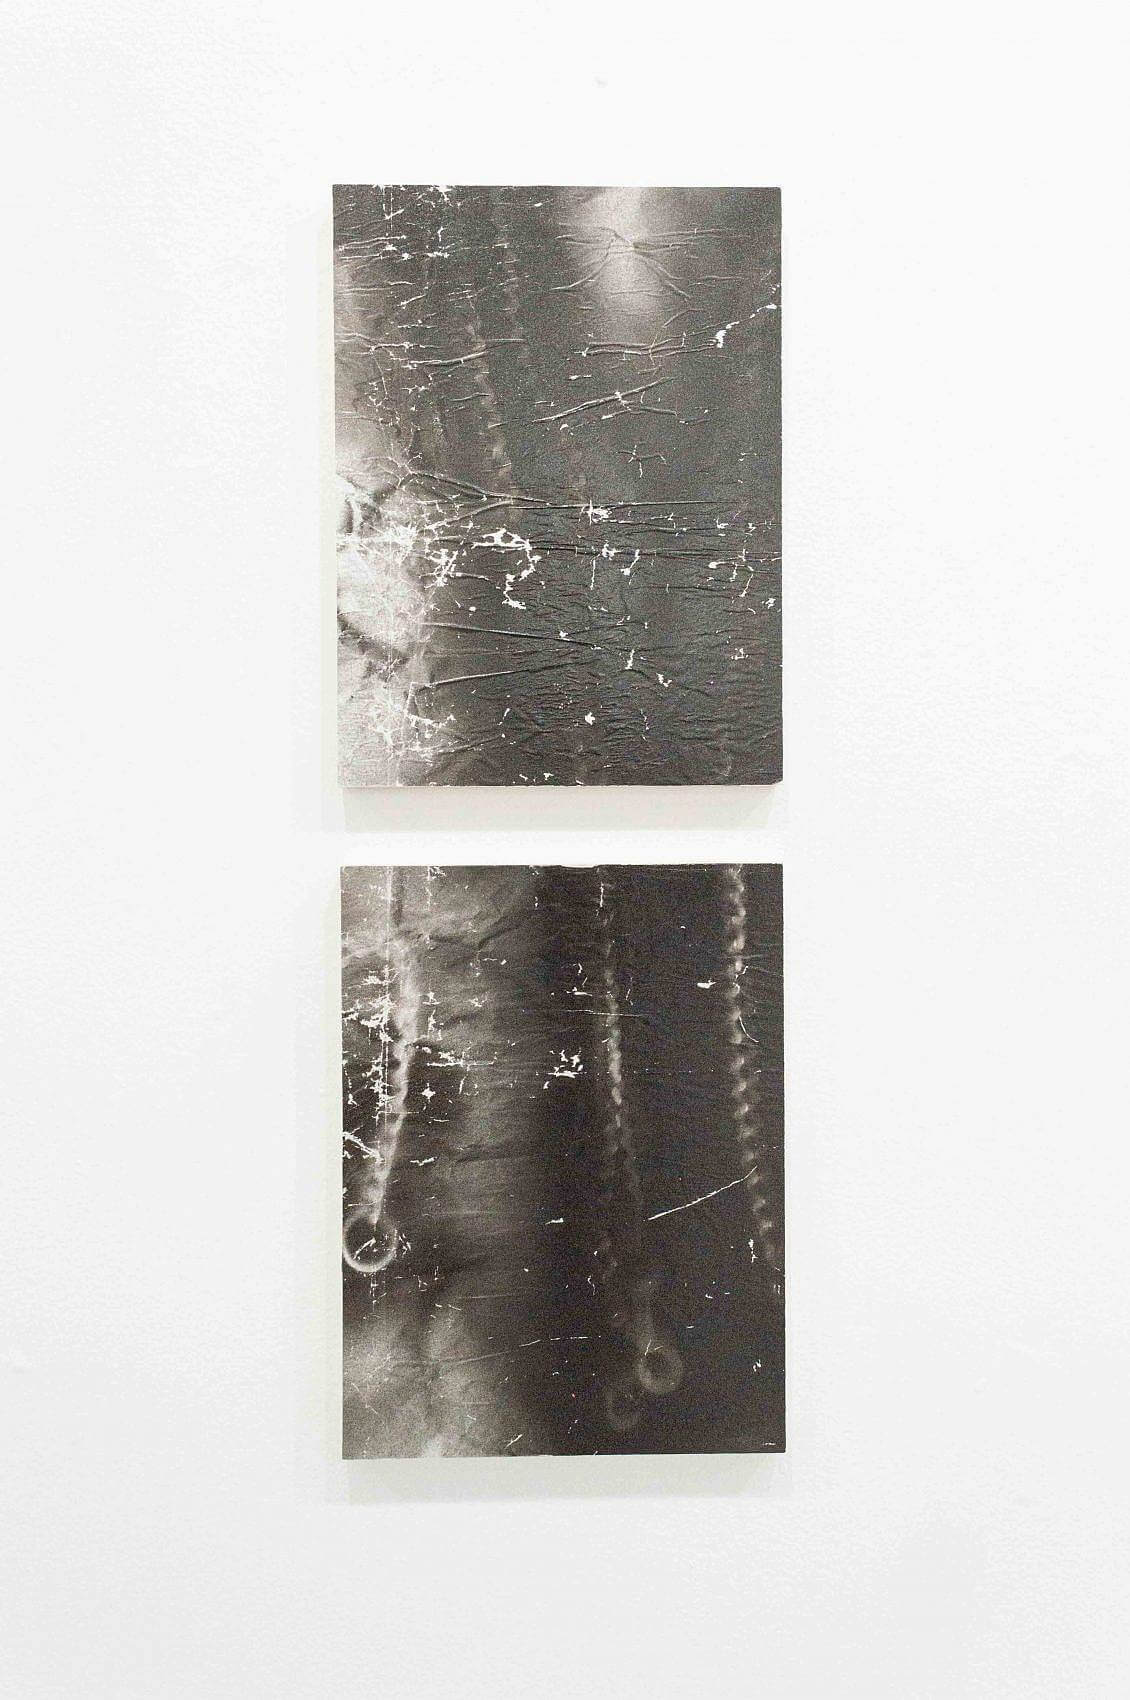 There are two rectangular panels stacked vertically. The images are of blurred chains with hooks on the end and the top image leads into the bottom. They are in black and white and the surface is wrinkled.